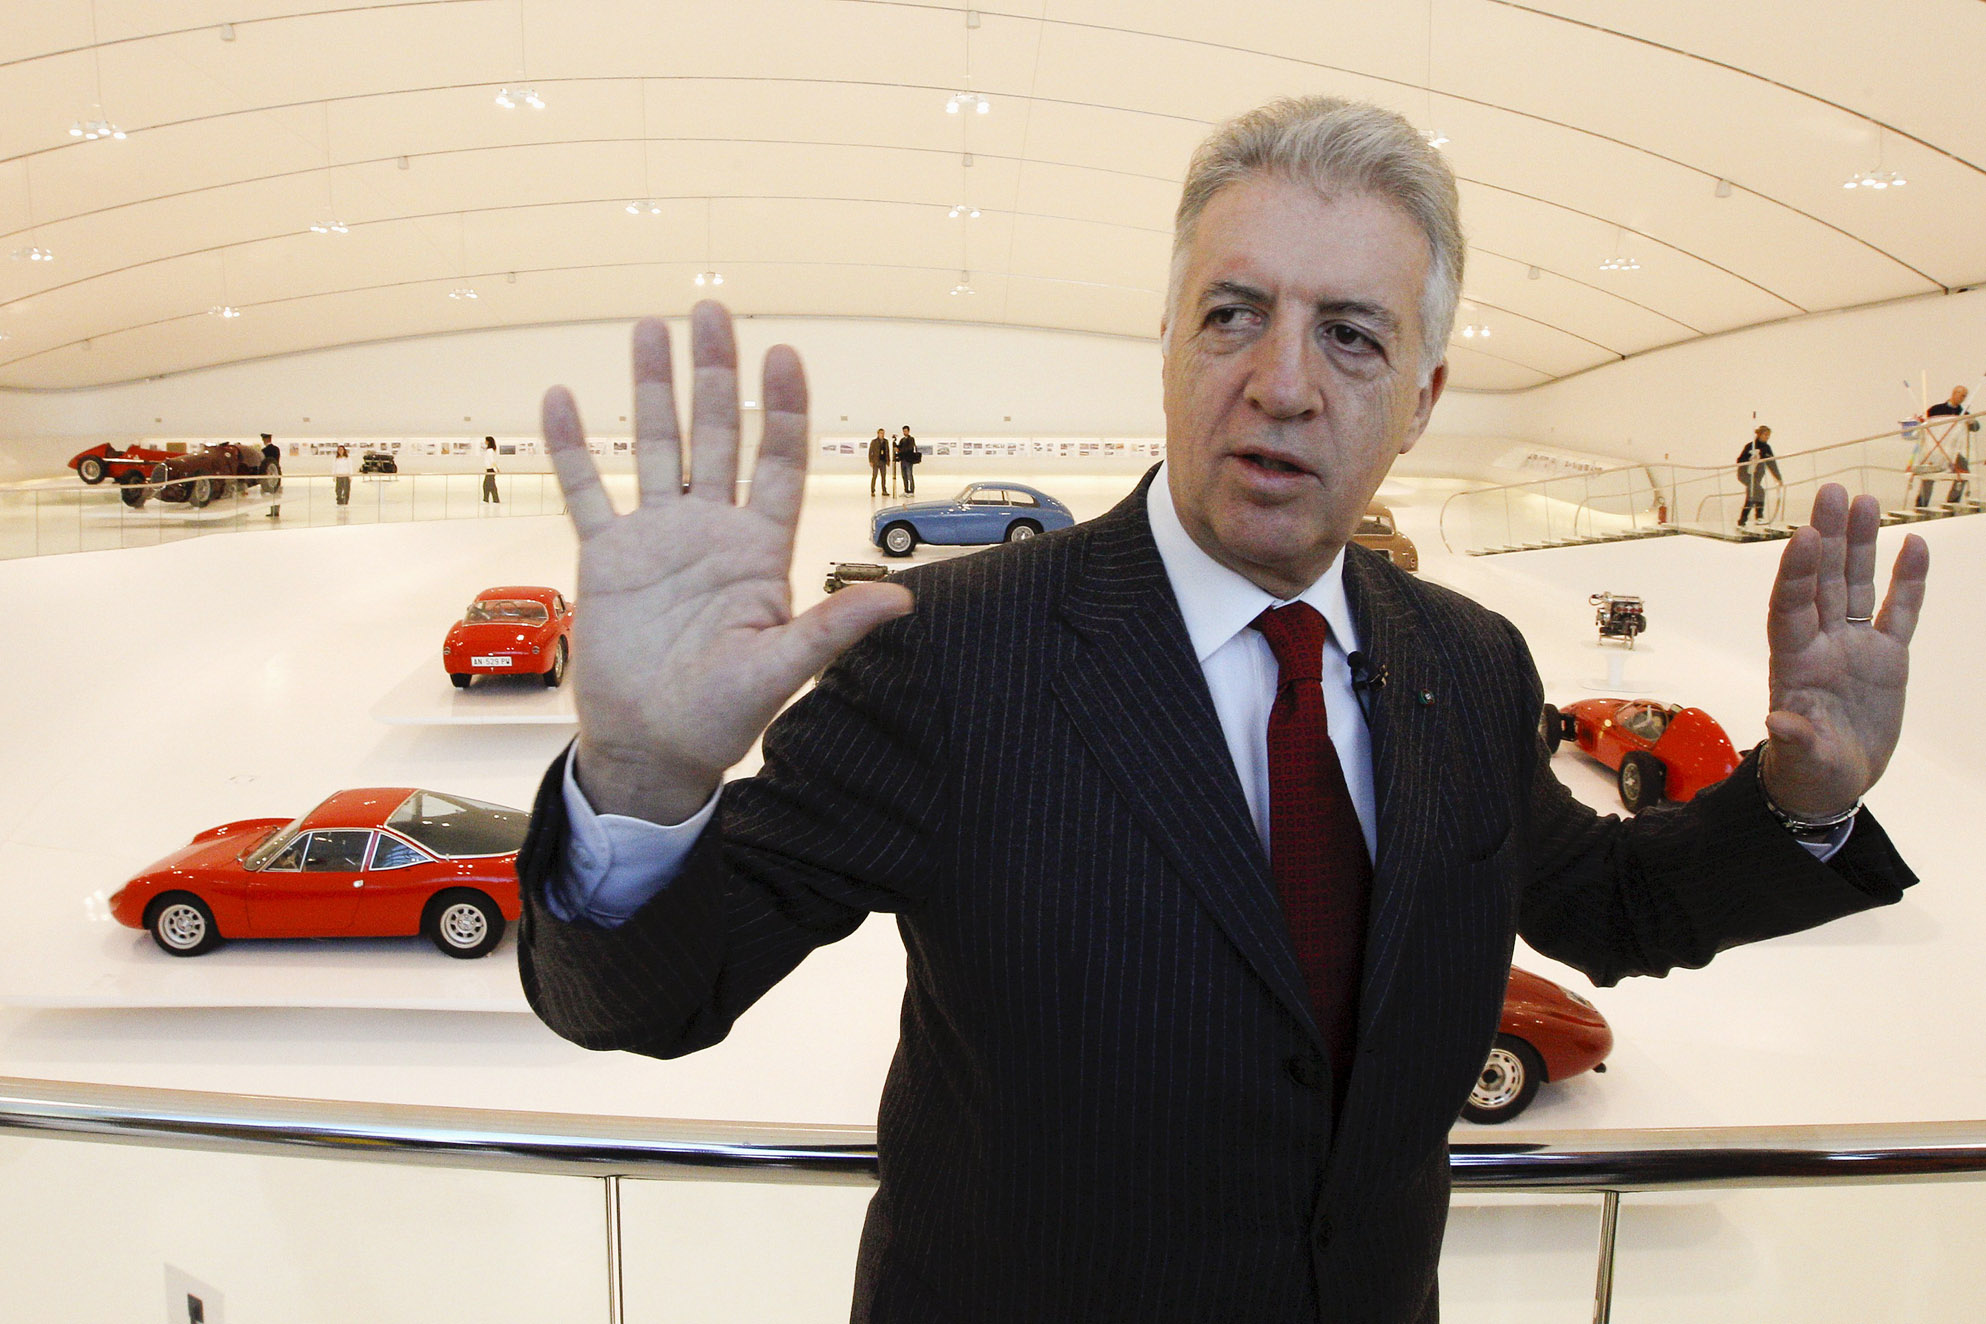 Italy S Newest Billionaire Is An Old Guy But He Drives A Pretty Sweet Car